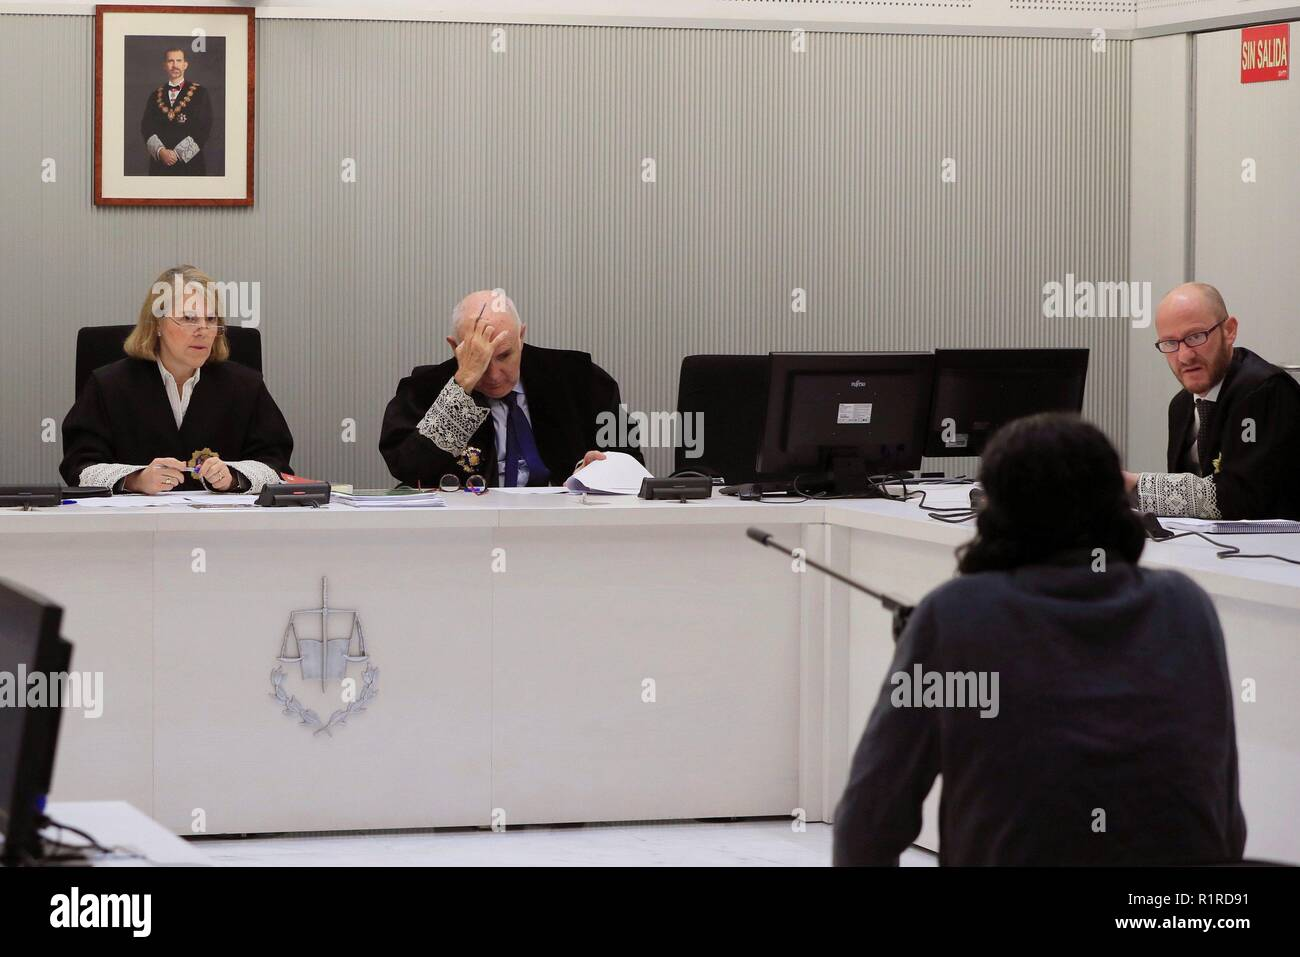 Madrid, Spain. 14th Nov, 2018. Jihadist suspect Allal el Mourabit Ahammar (R) stands trial at the Spanish National Court in Madrid, Spain, 14 November 2018. Ahammar was arrested in 2016 after suspicions that he was plotting a truck attack similar to 2016 Nice attack. Credit: Fernando Alvarado/EFE/Alamy Live News - Stock Image